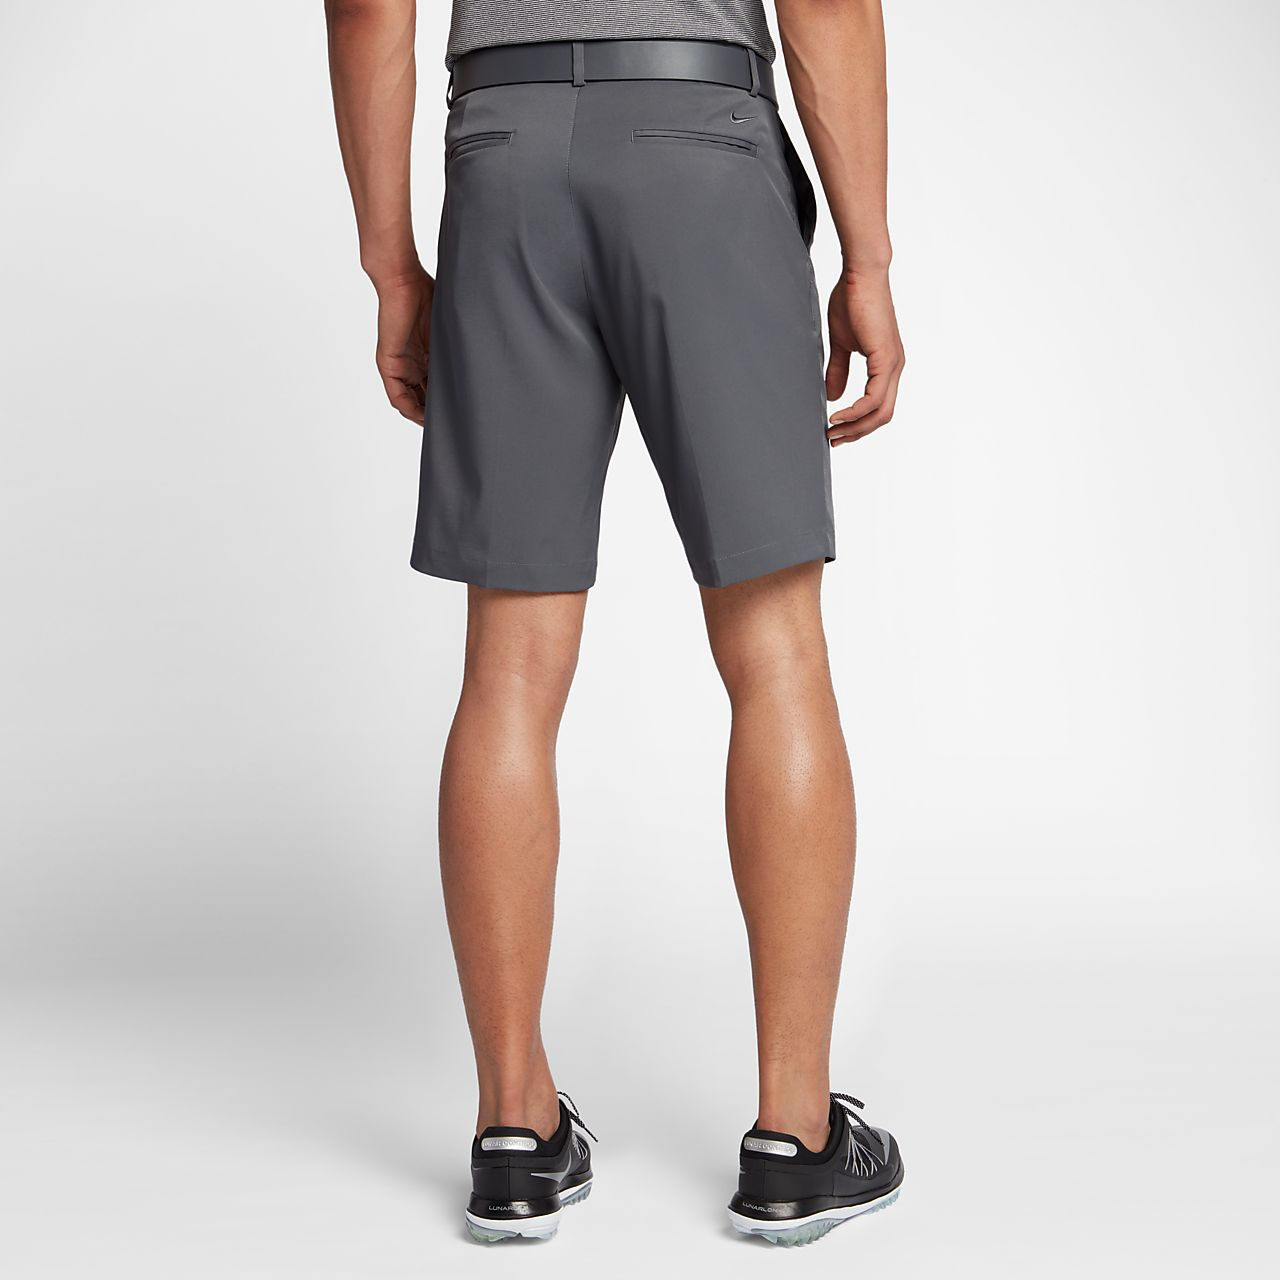 nike free flyknit mens 12 inseam golf shorts